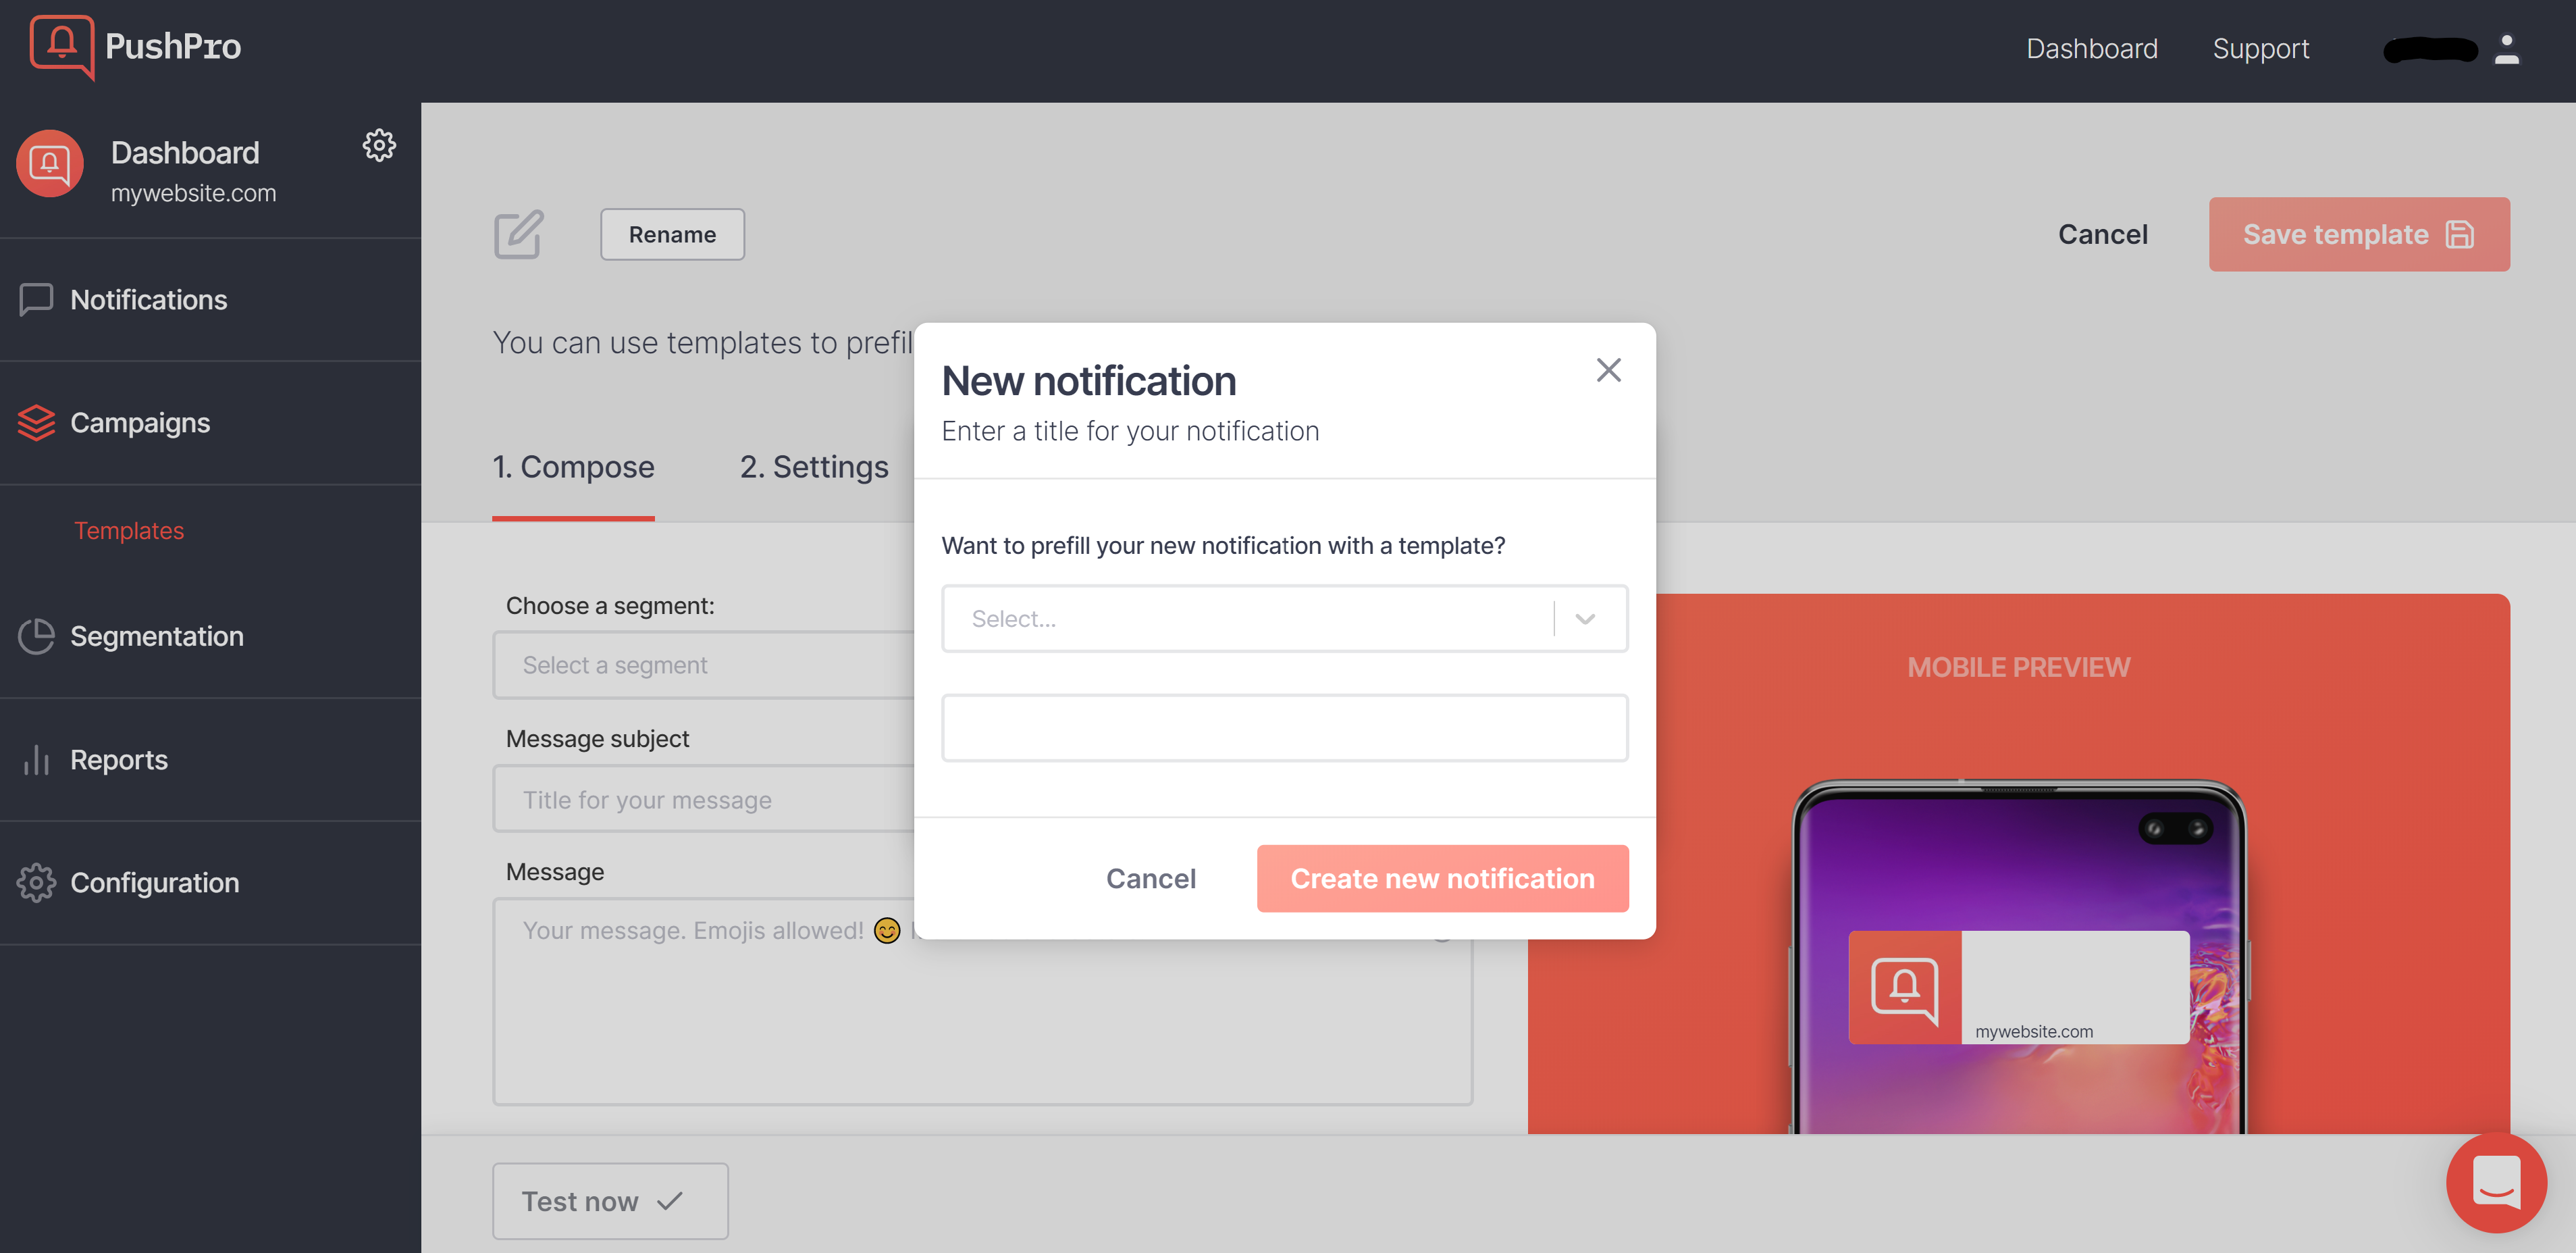 Screenshot of creating a notification template in the PushPro portal